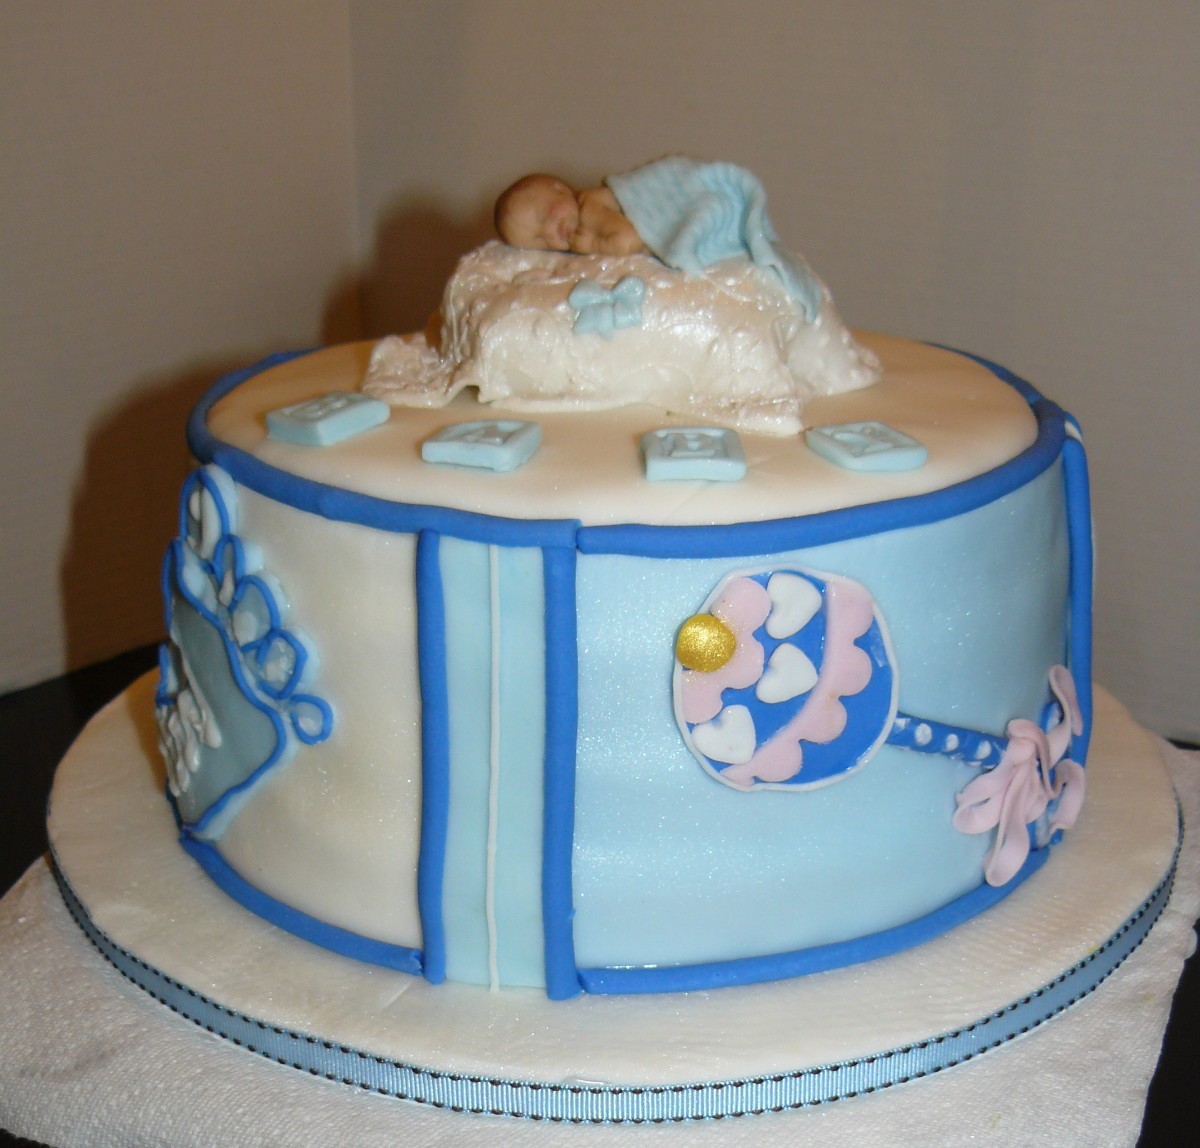 Cake Design Baby Shower : 10 Gorgeous Cake Designs For Baby Shower CAKE DESIGN AND ...